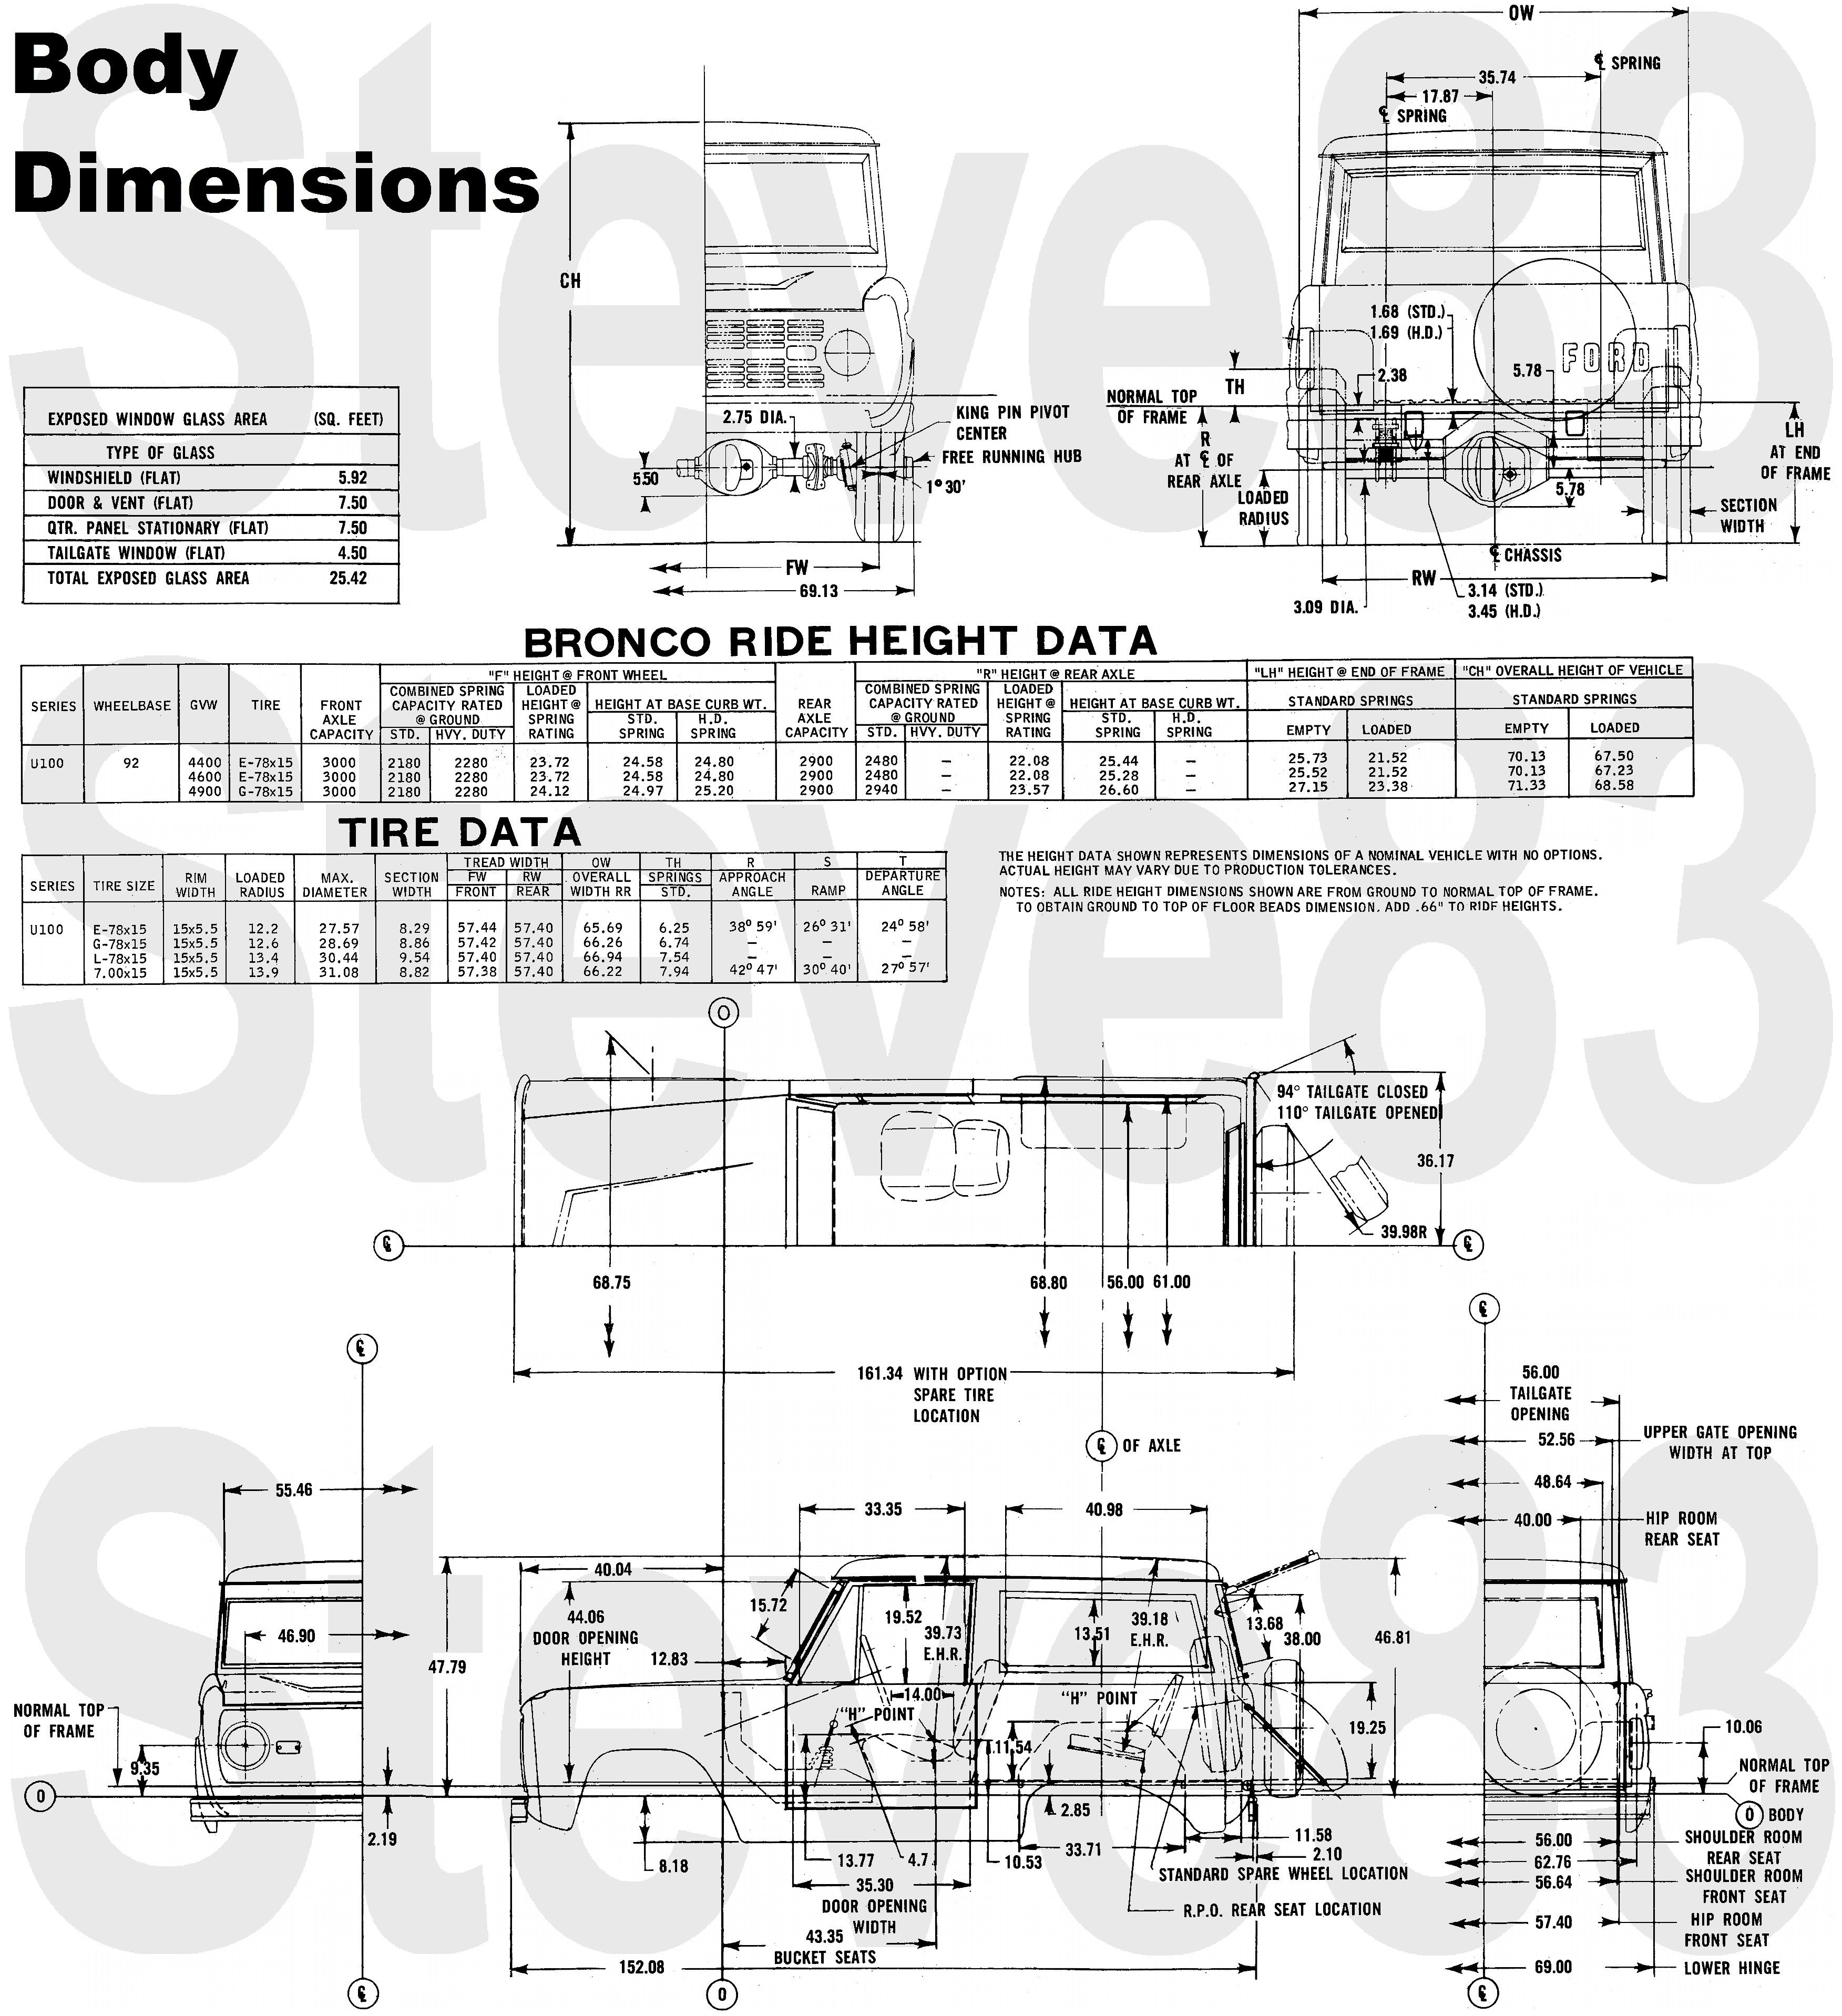 hight resolution of ford bronco frame diagram basic guide wiring diagram u2022 1974 ford bronco 302 vacuum diagram